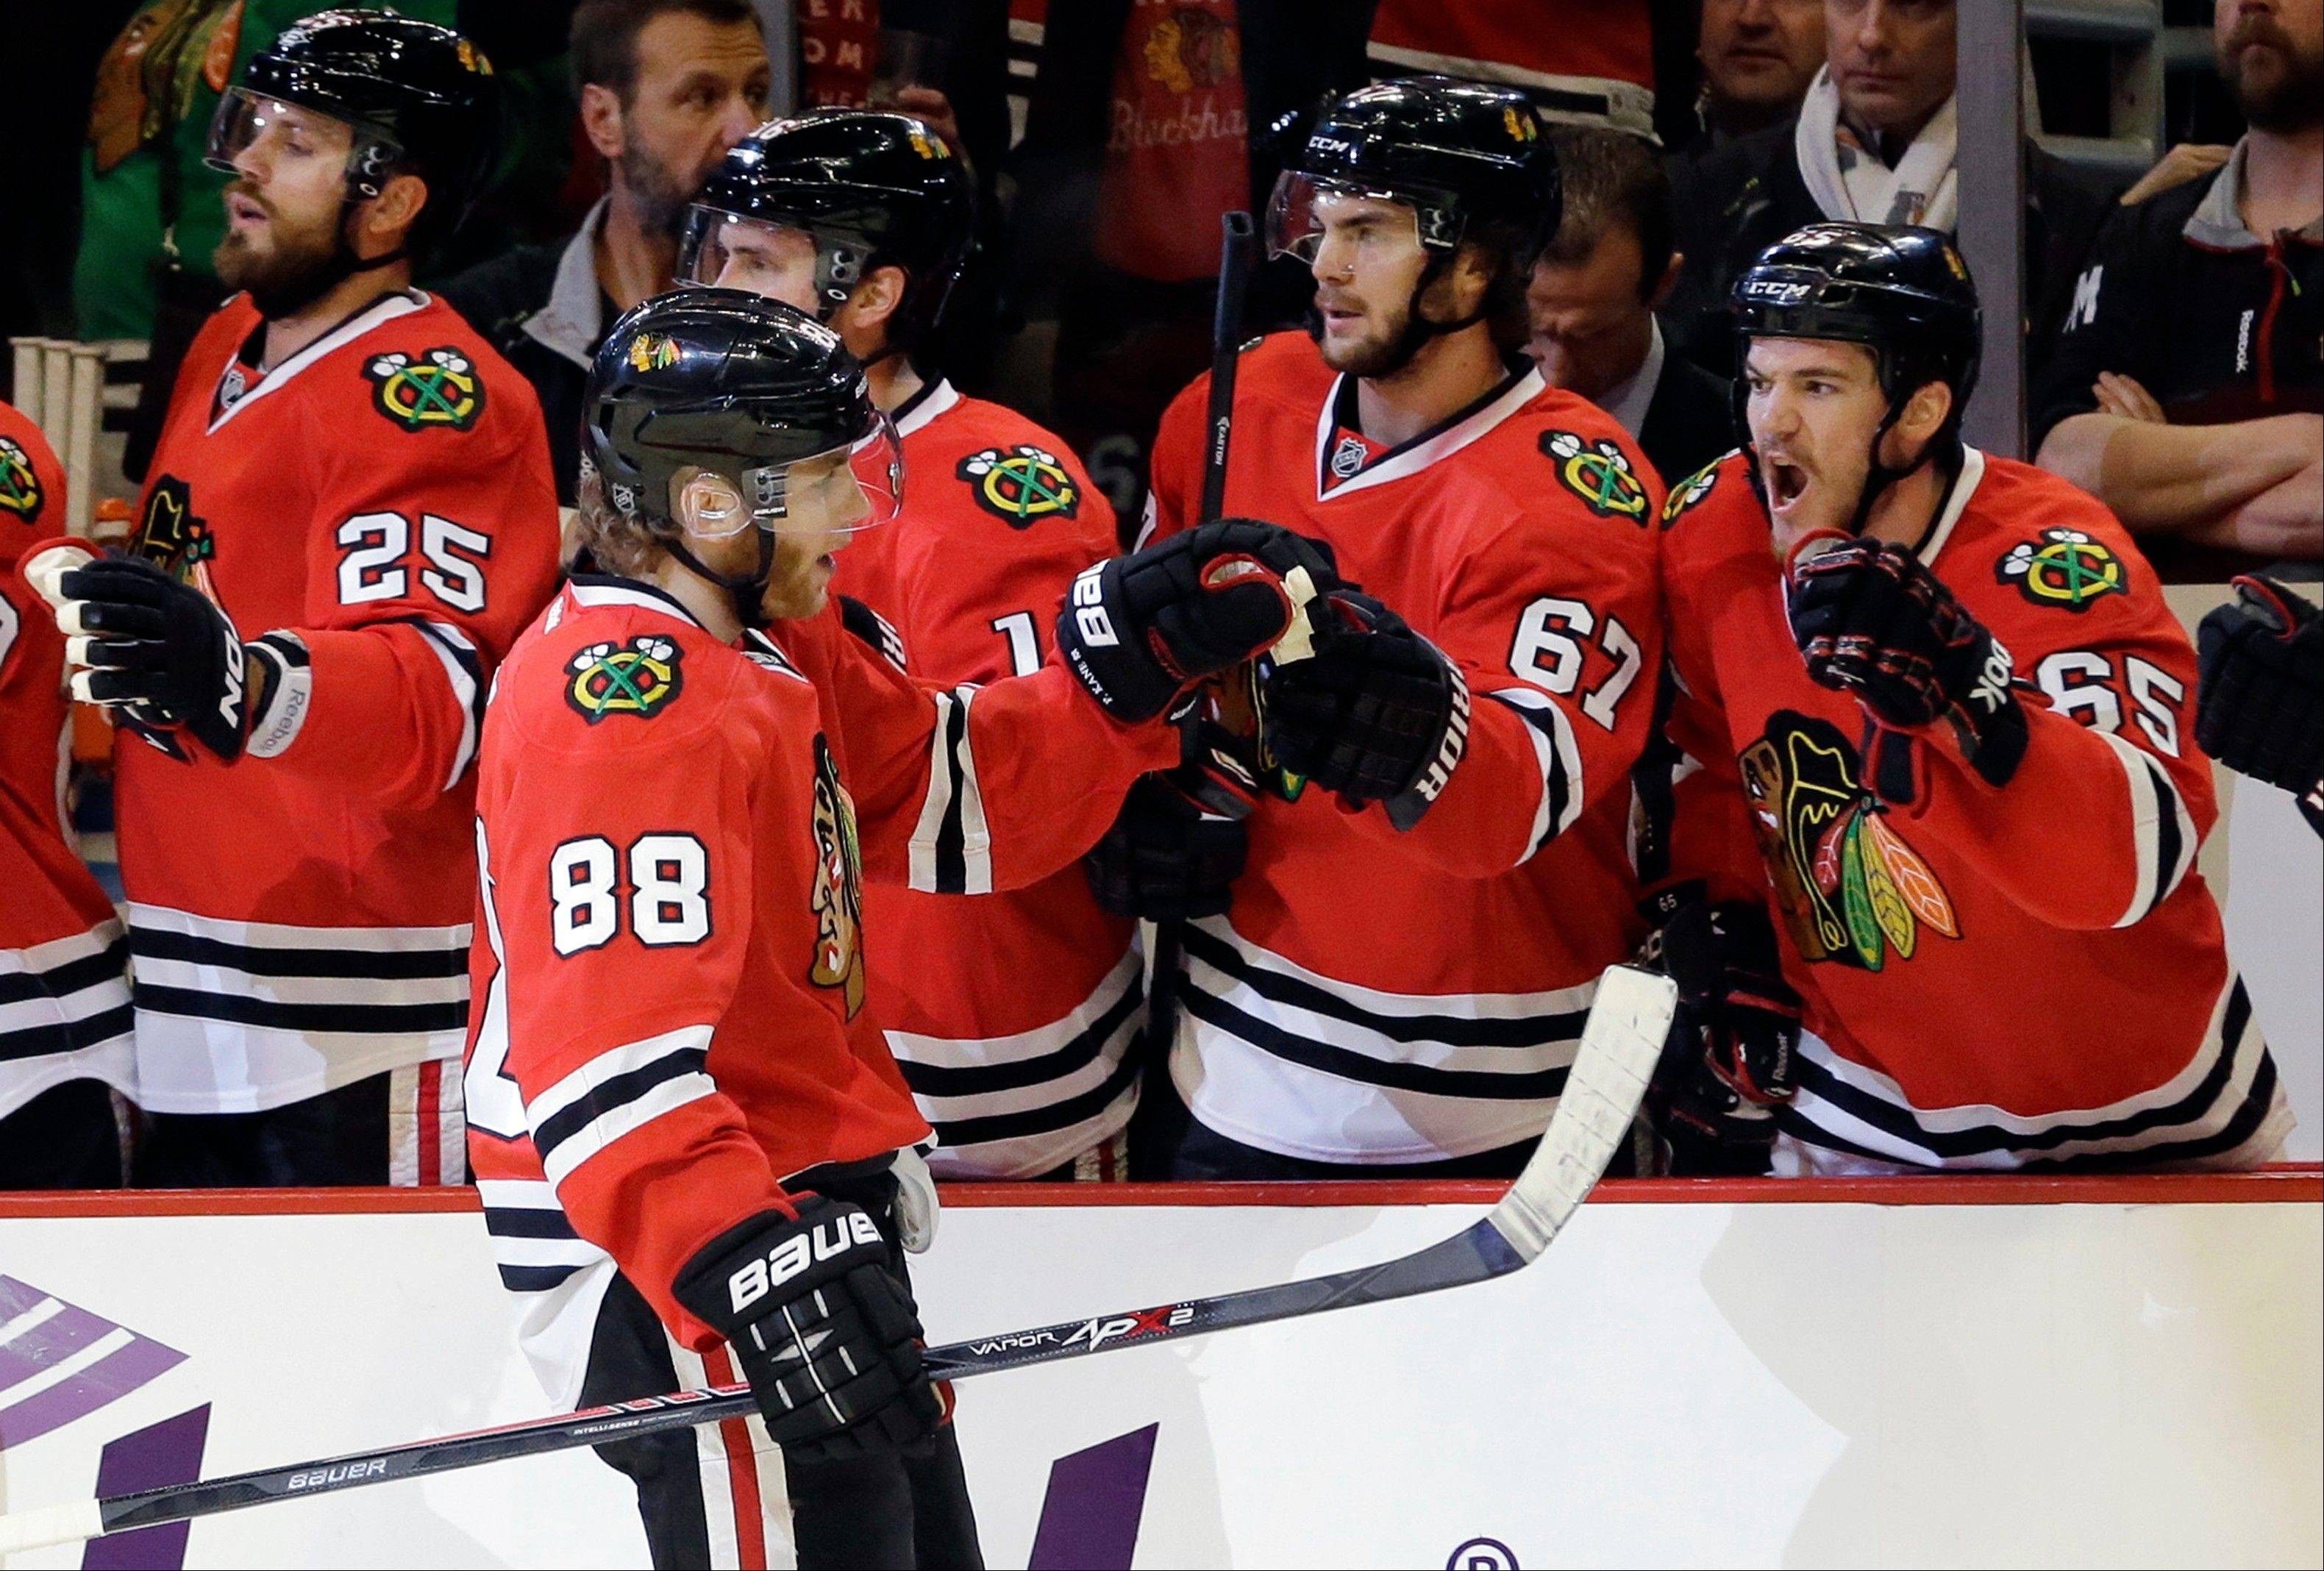 Chicago Blackhawks right wing Patrick Kane (88) celebrates with his teammates after scoring a goal during the first period in Game 5 of the NHL hockey Stanley Cup playoffs Western Conference finals against the Los Angeles Kings, Saturday, June 8, 2013, in Chicago.